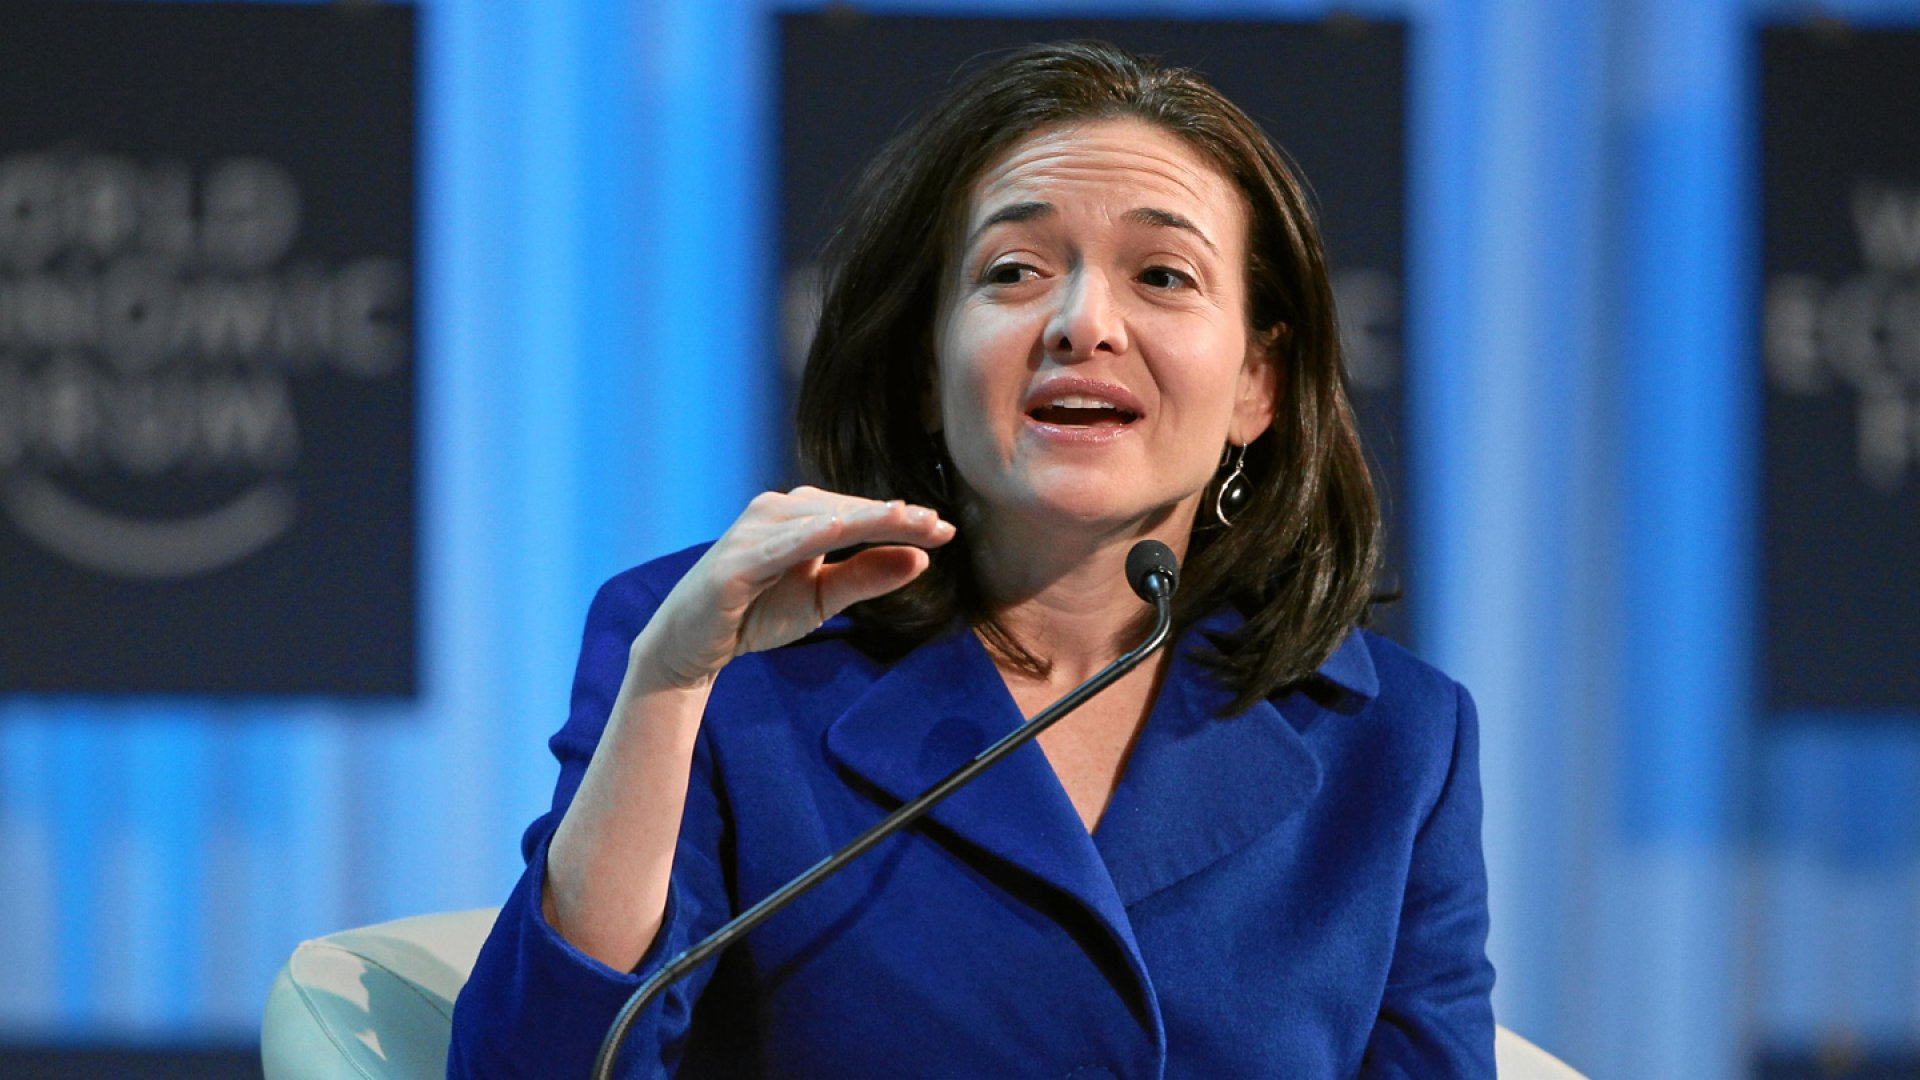 Sheryl Sandberg Leaves Work at 5:30. Why Can't You?